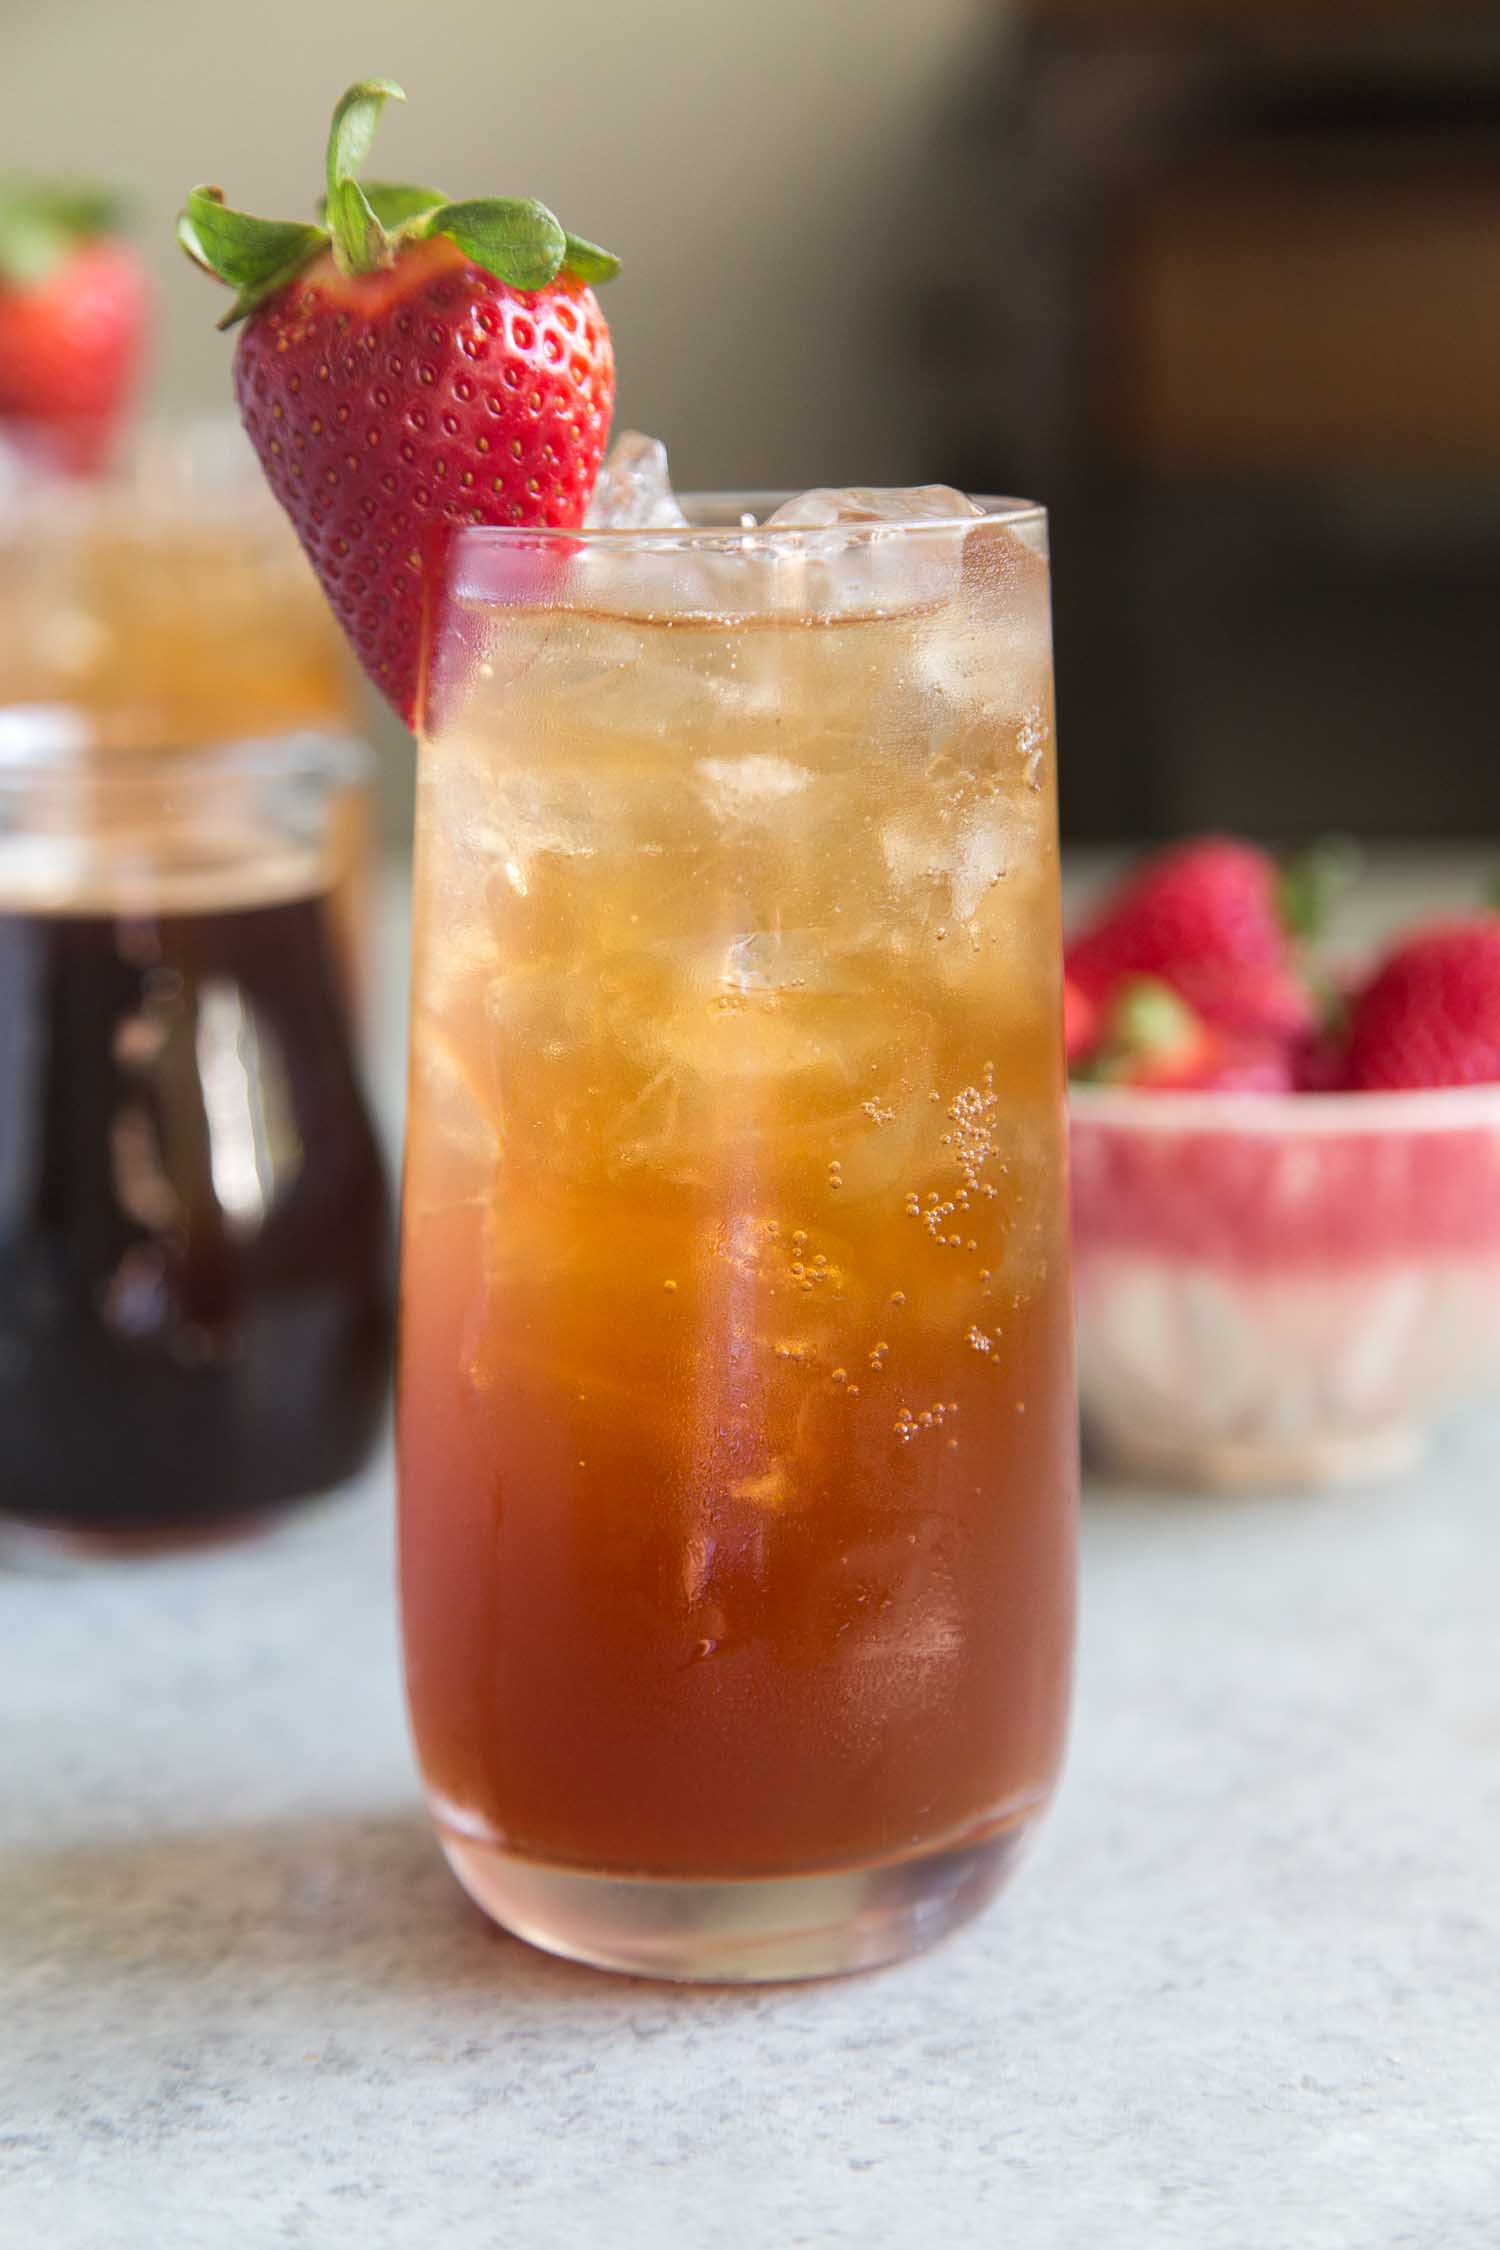 Strawberry Balsamic Shrub